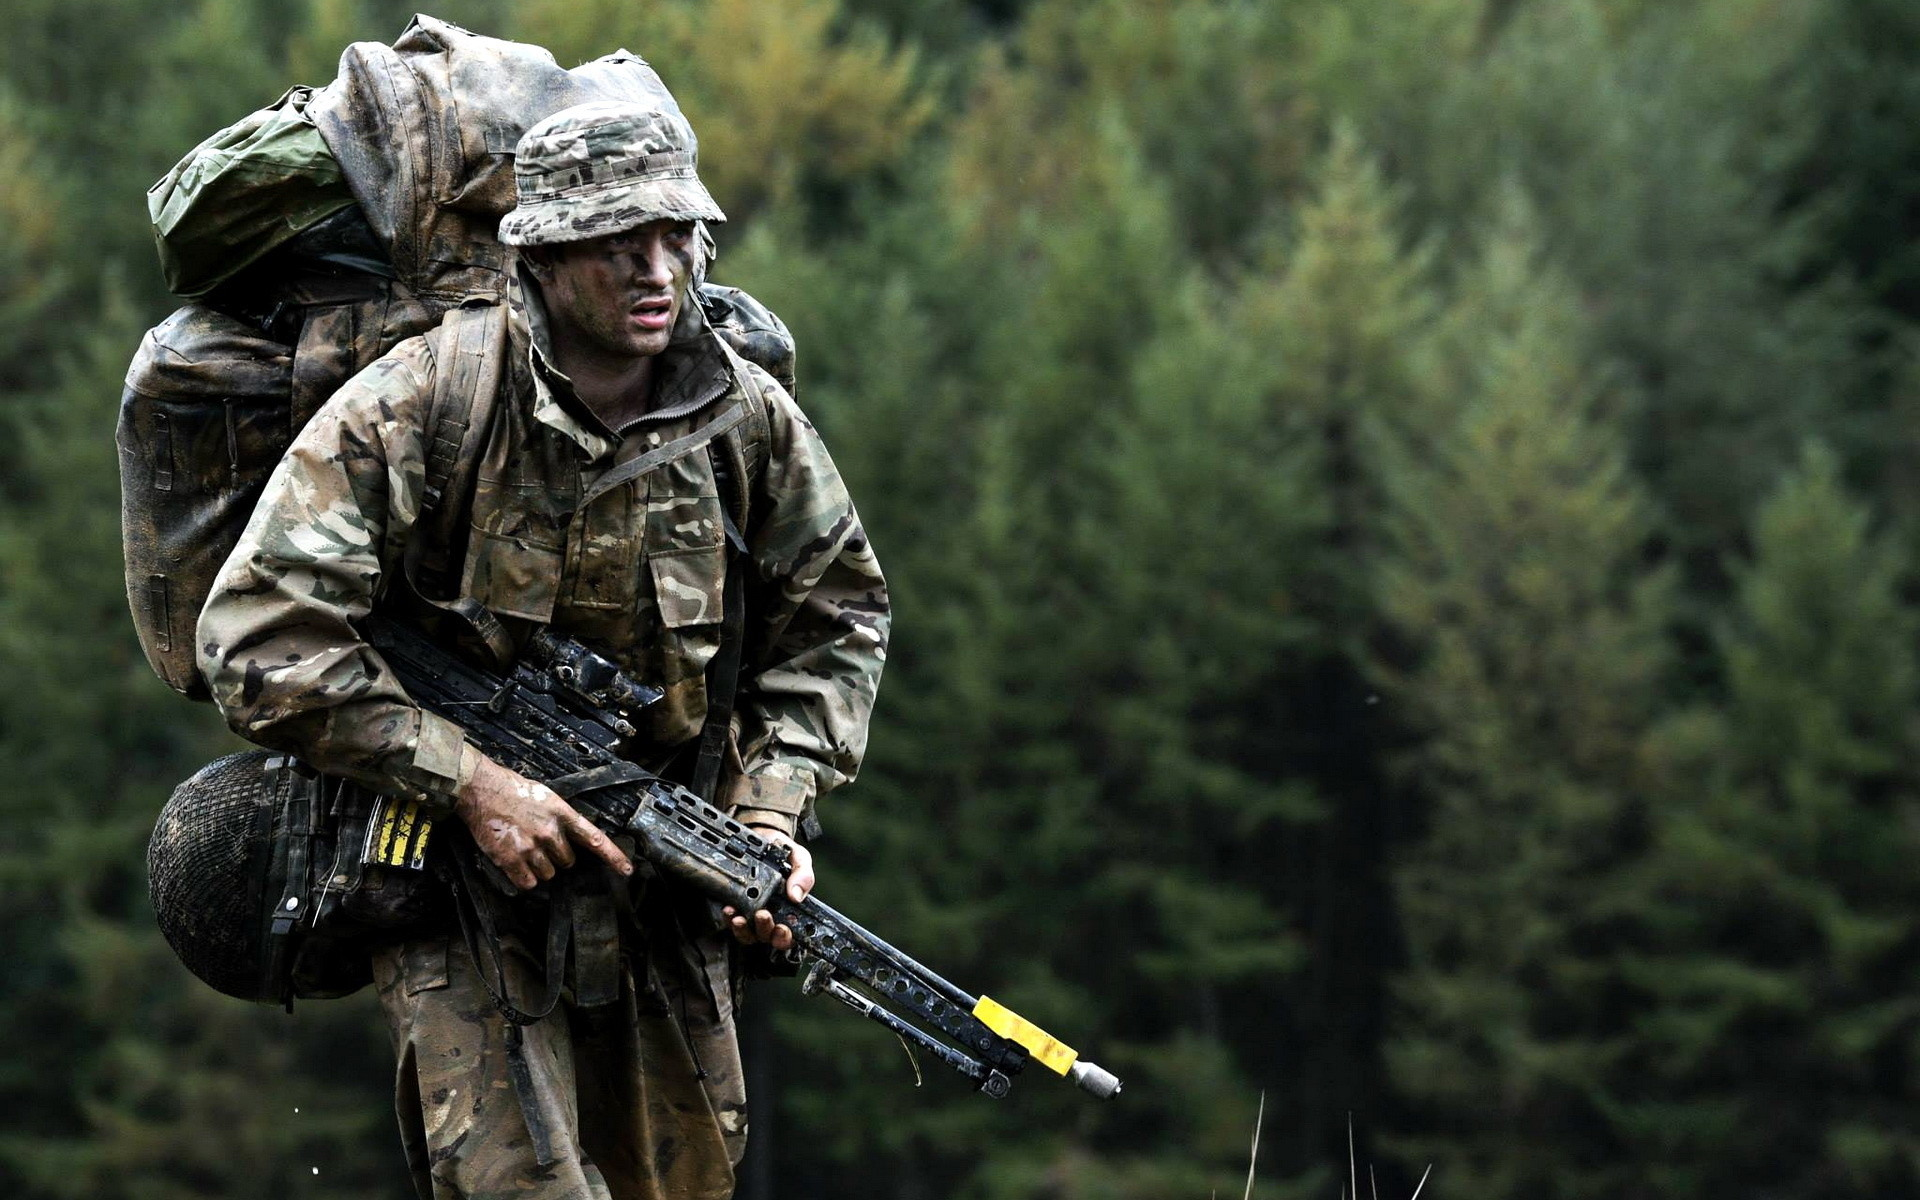 British Army HD Wallpapers – THIS Wallpaper